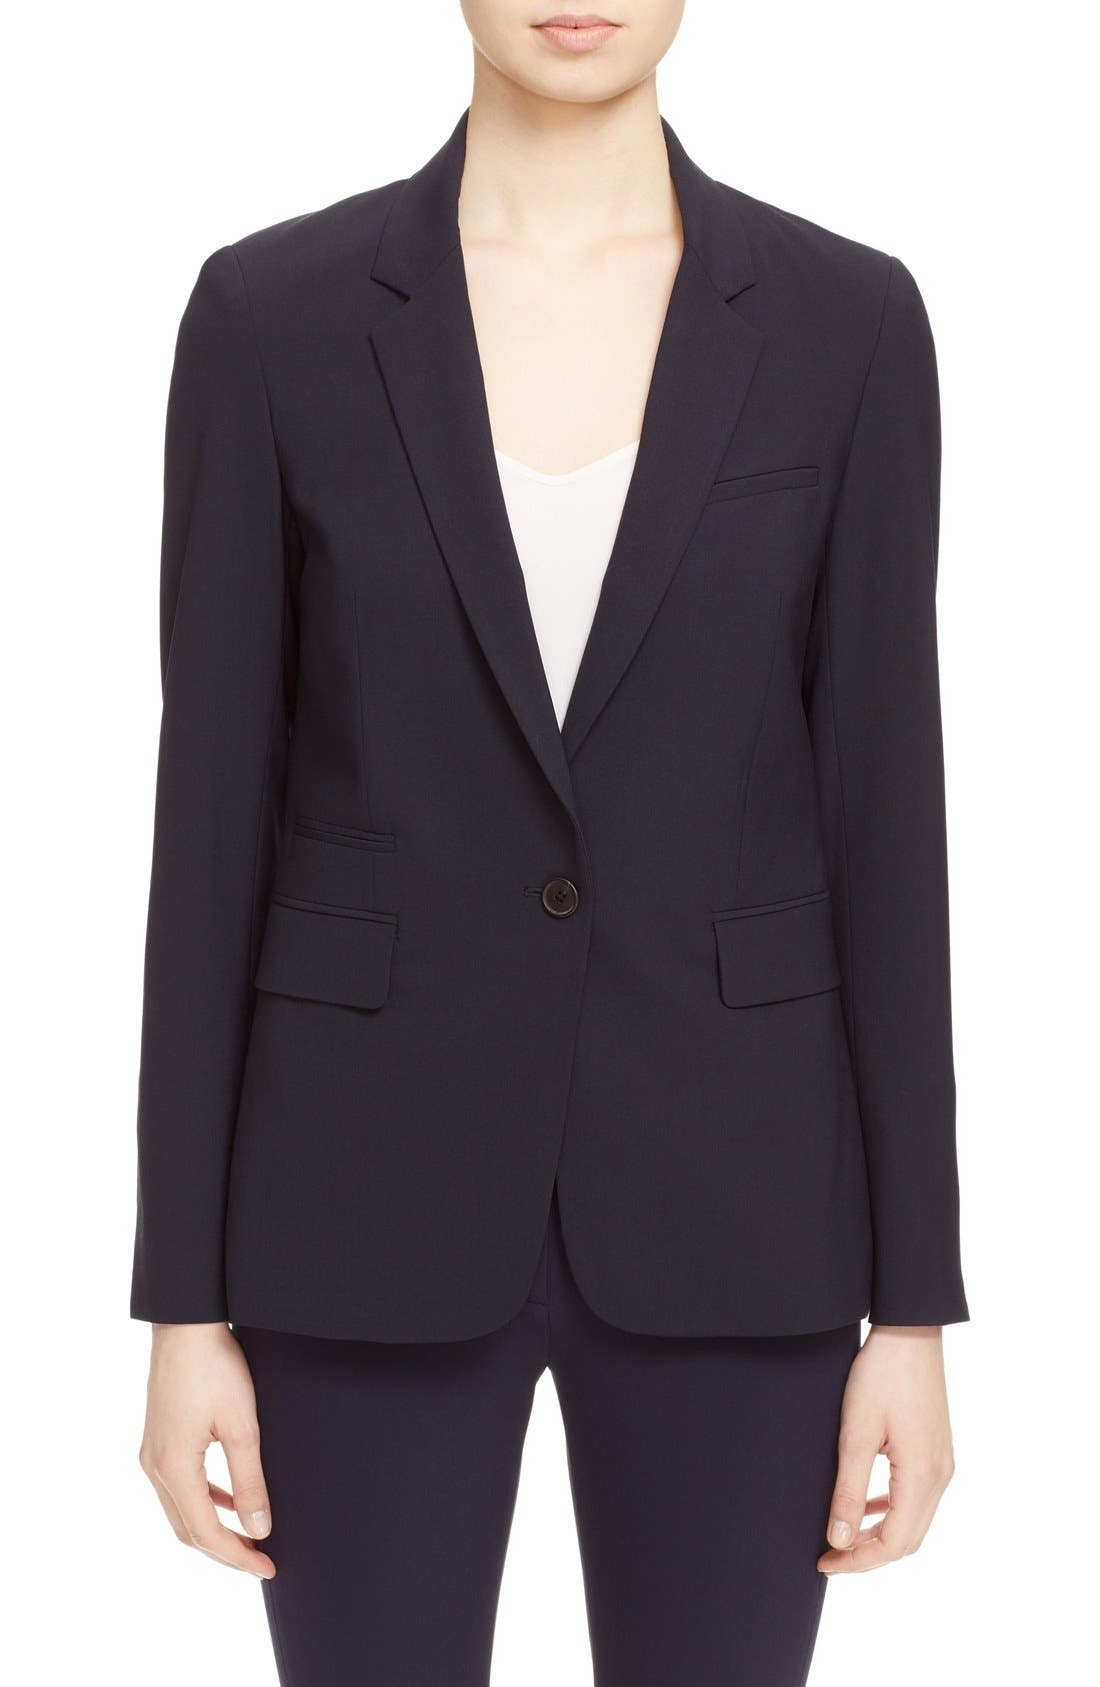 VERONICA BEARD 'Classic' Lambswool Blend Single Button Blazer, Main, color, NAVY